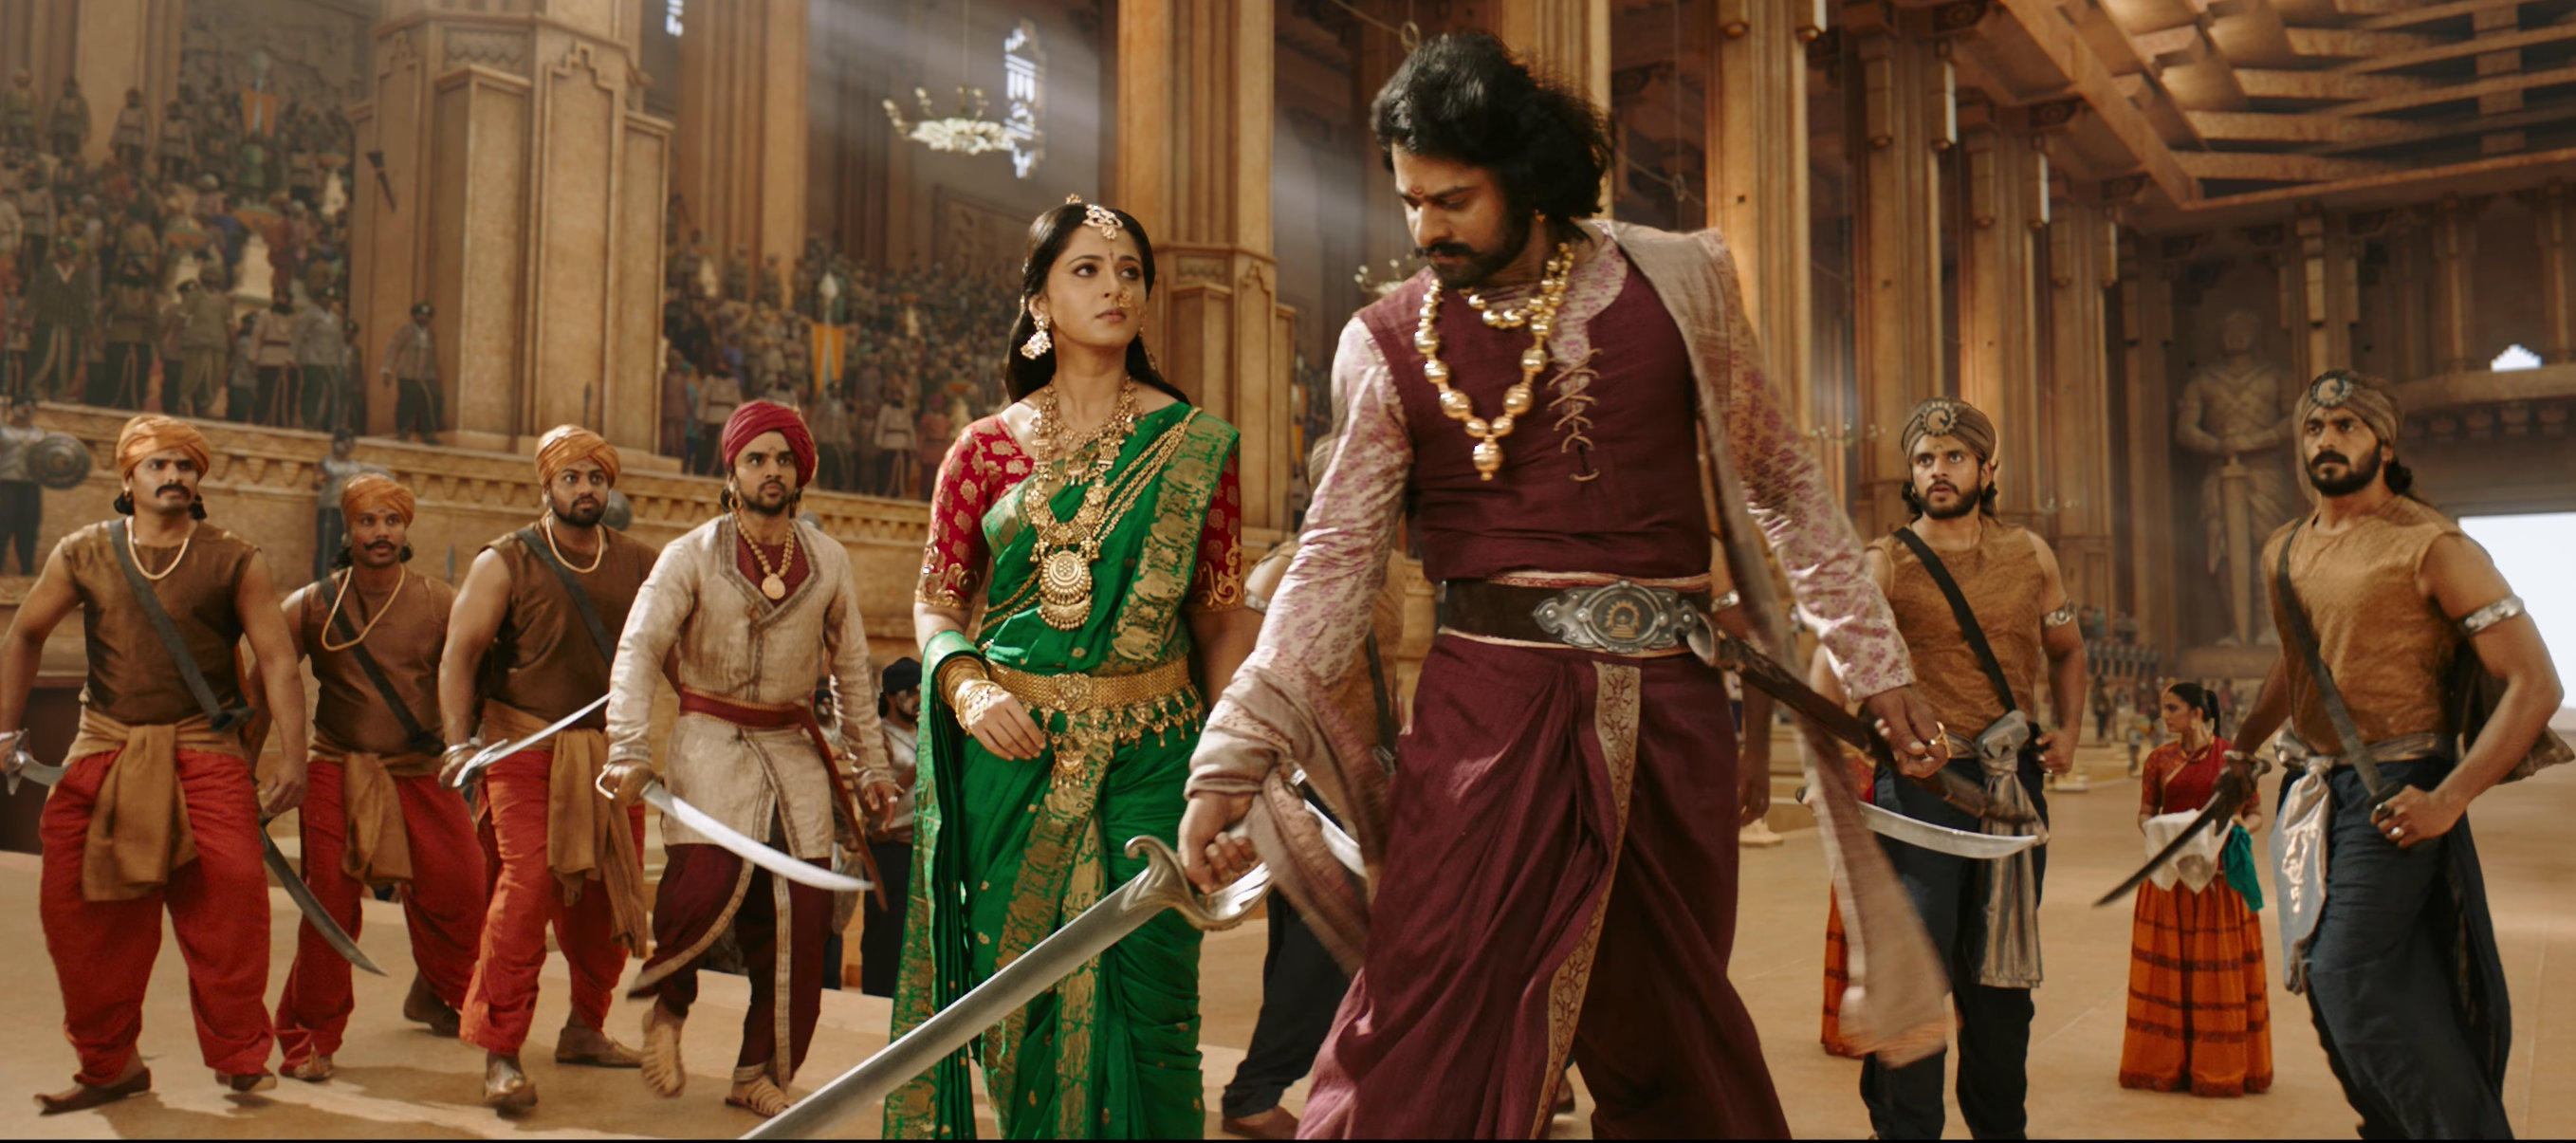 baahubali - the conclusion film, watch, download free movie trailer